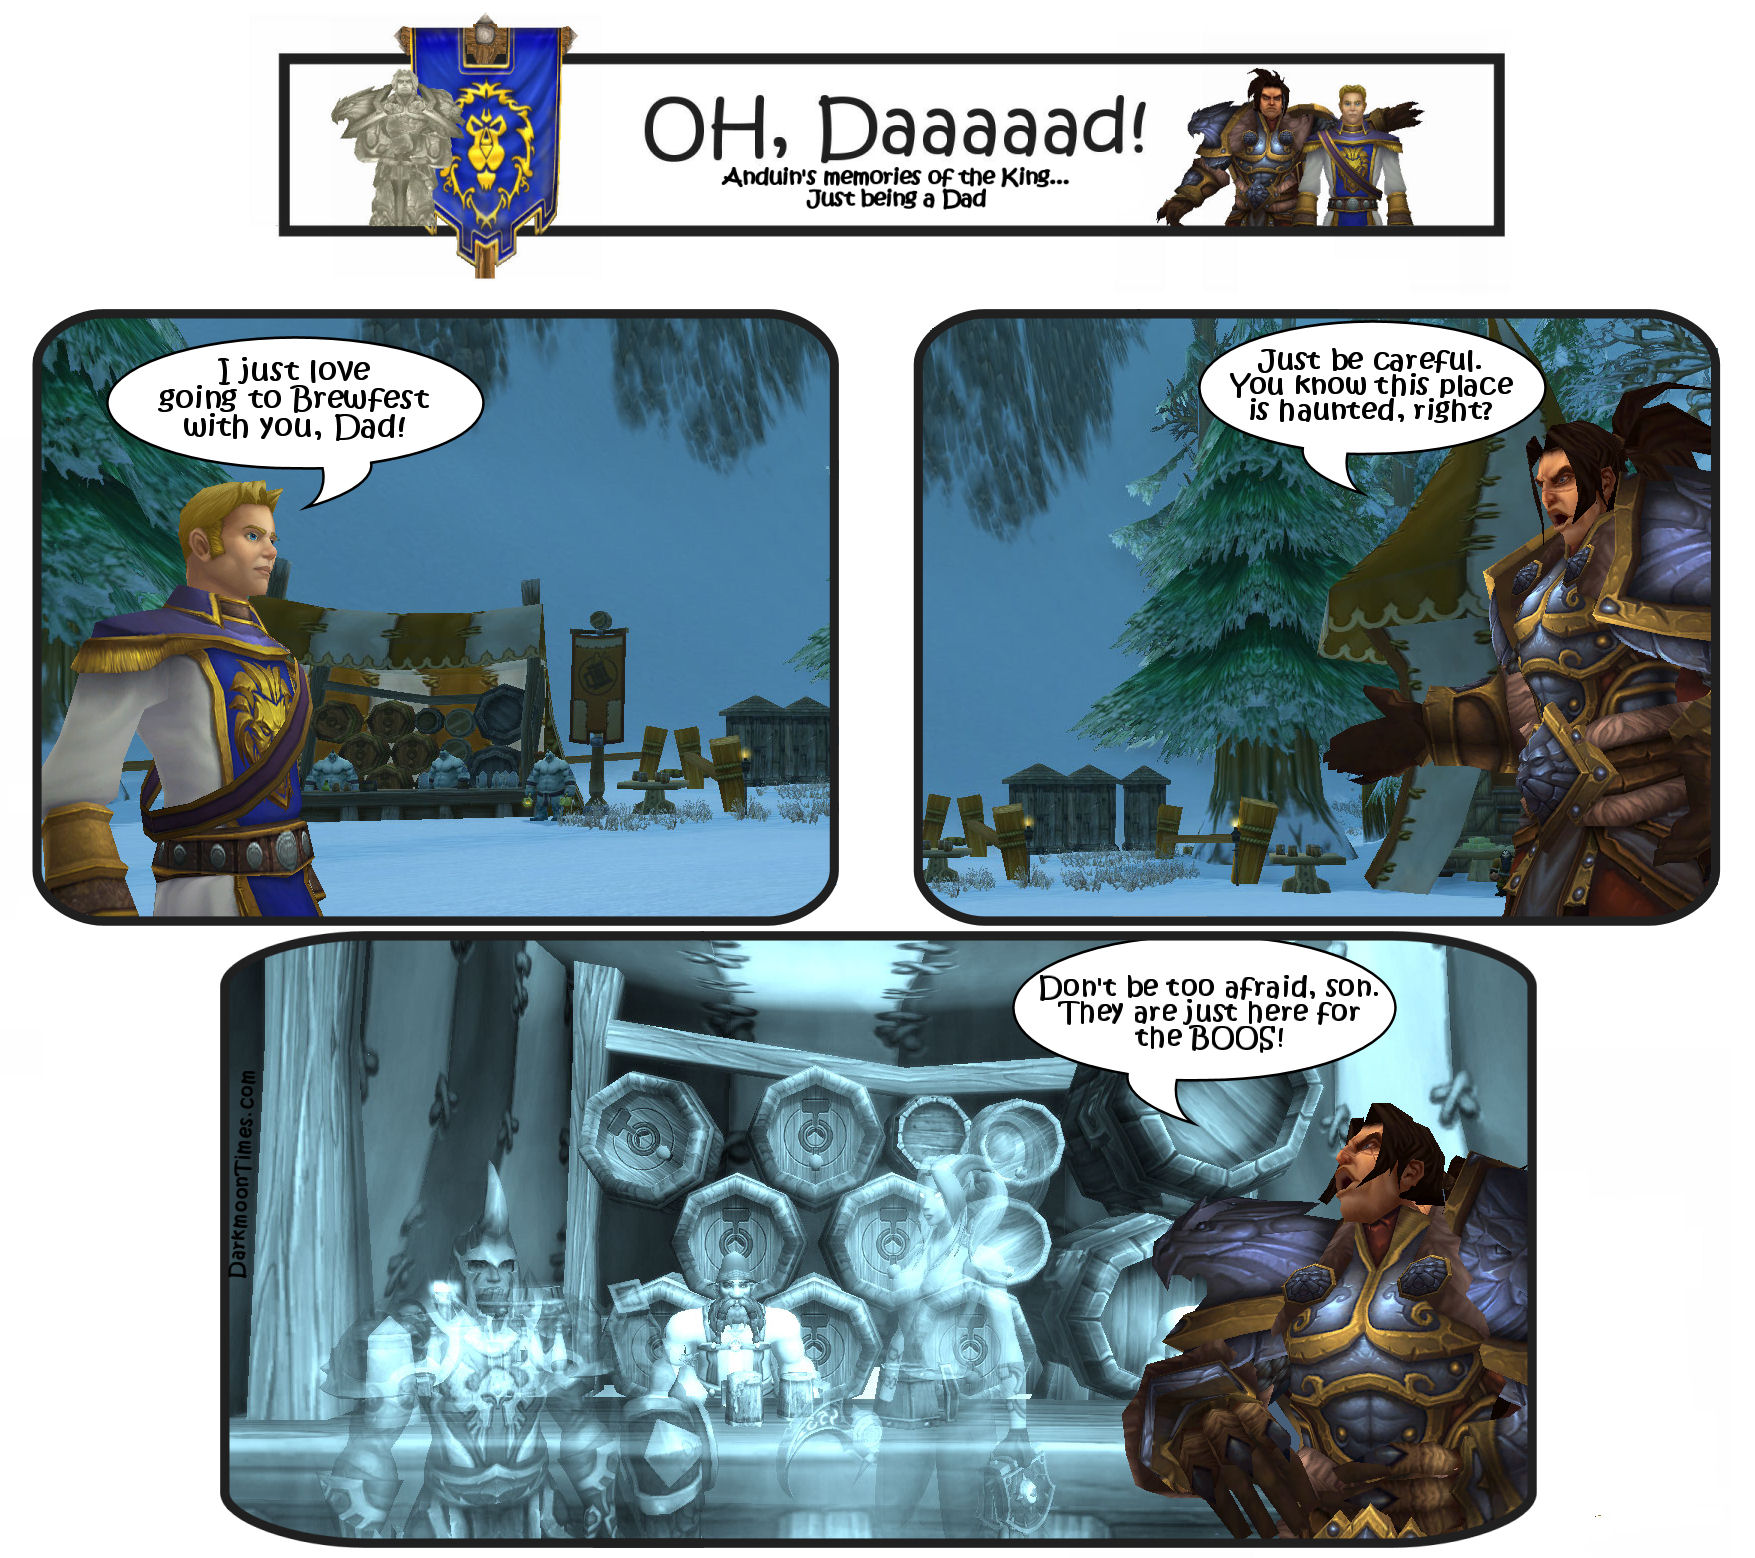 Dad joke where Varian tells Anduin the Brewfest is haunted, but don't worry they are only there for the boos!